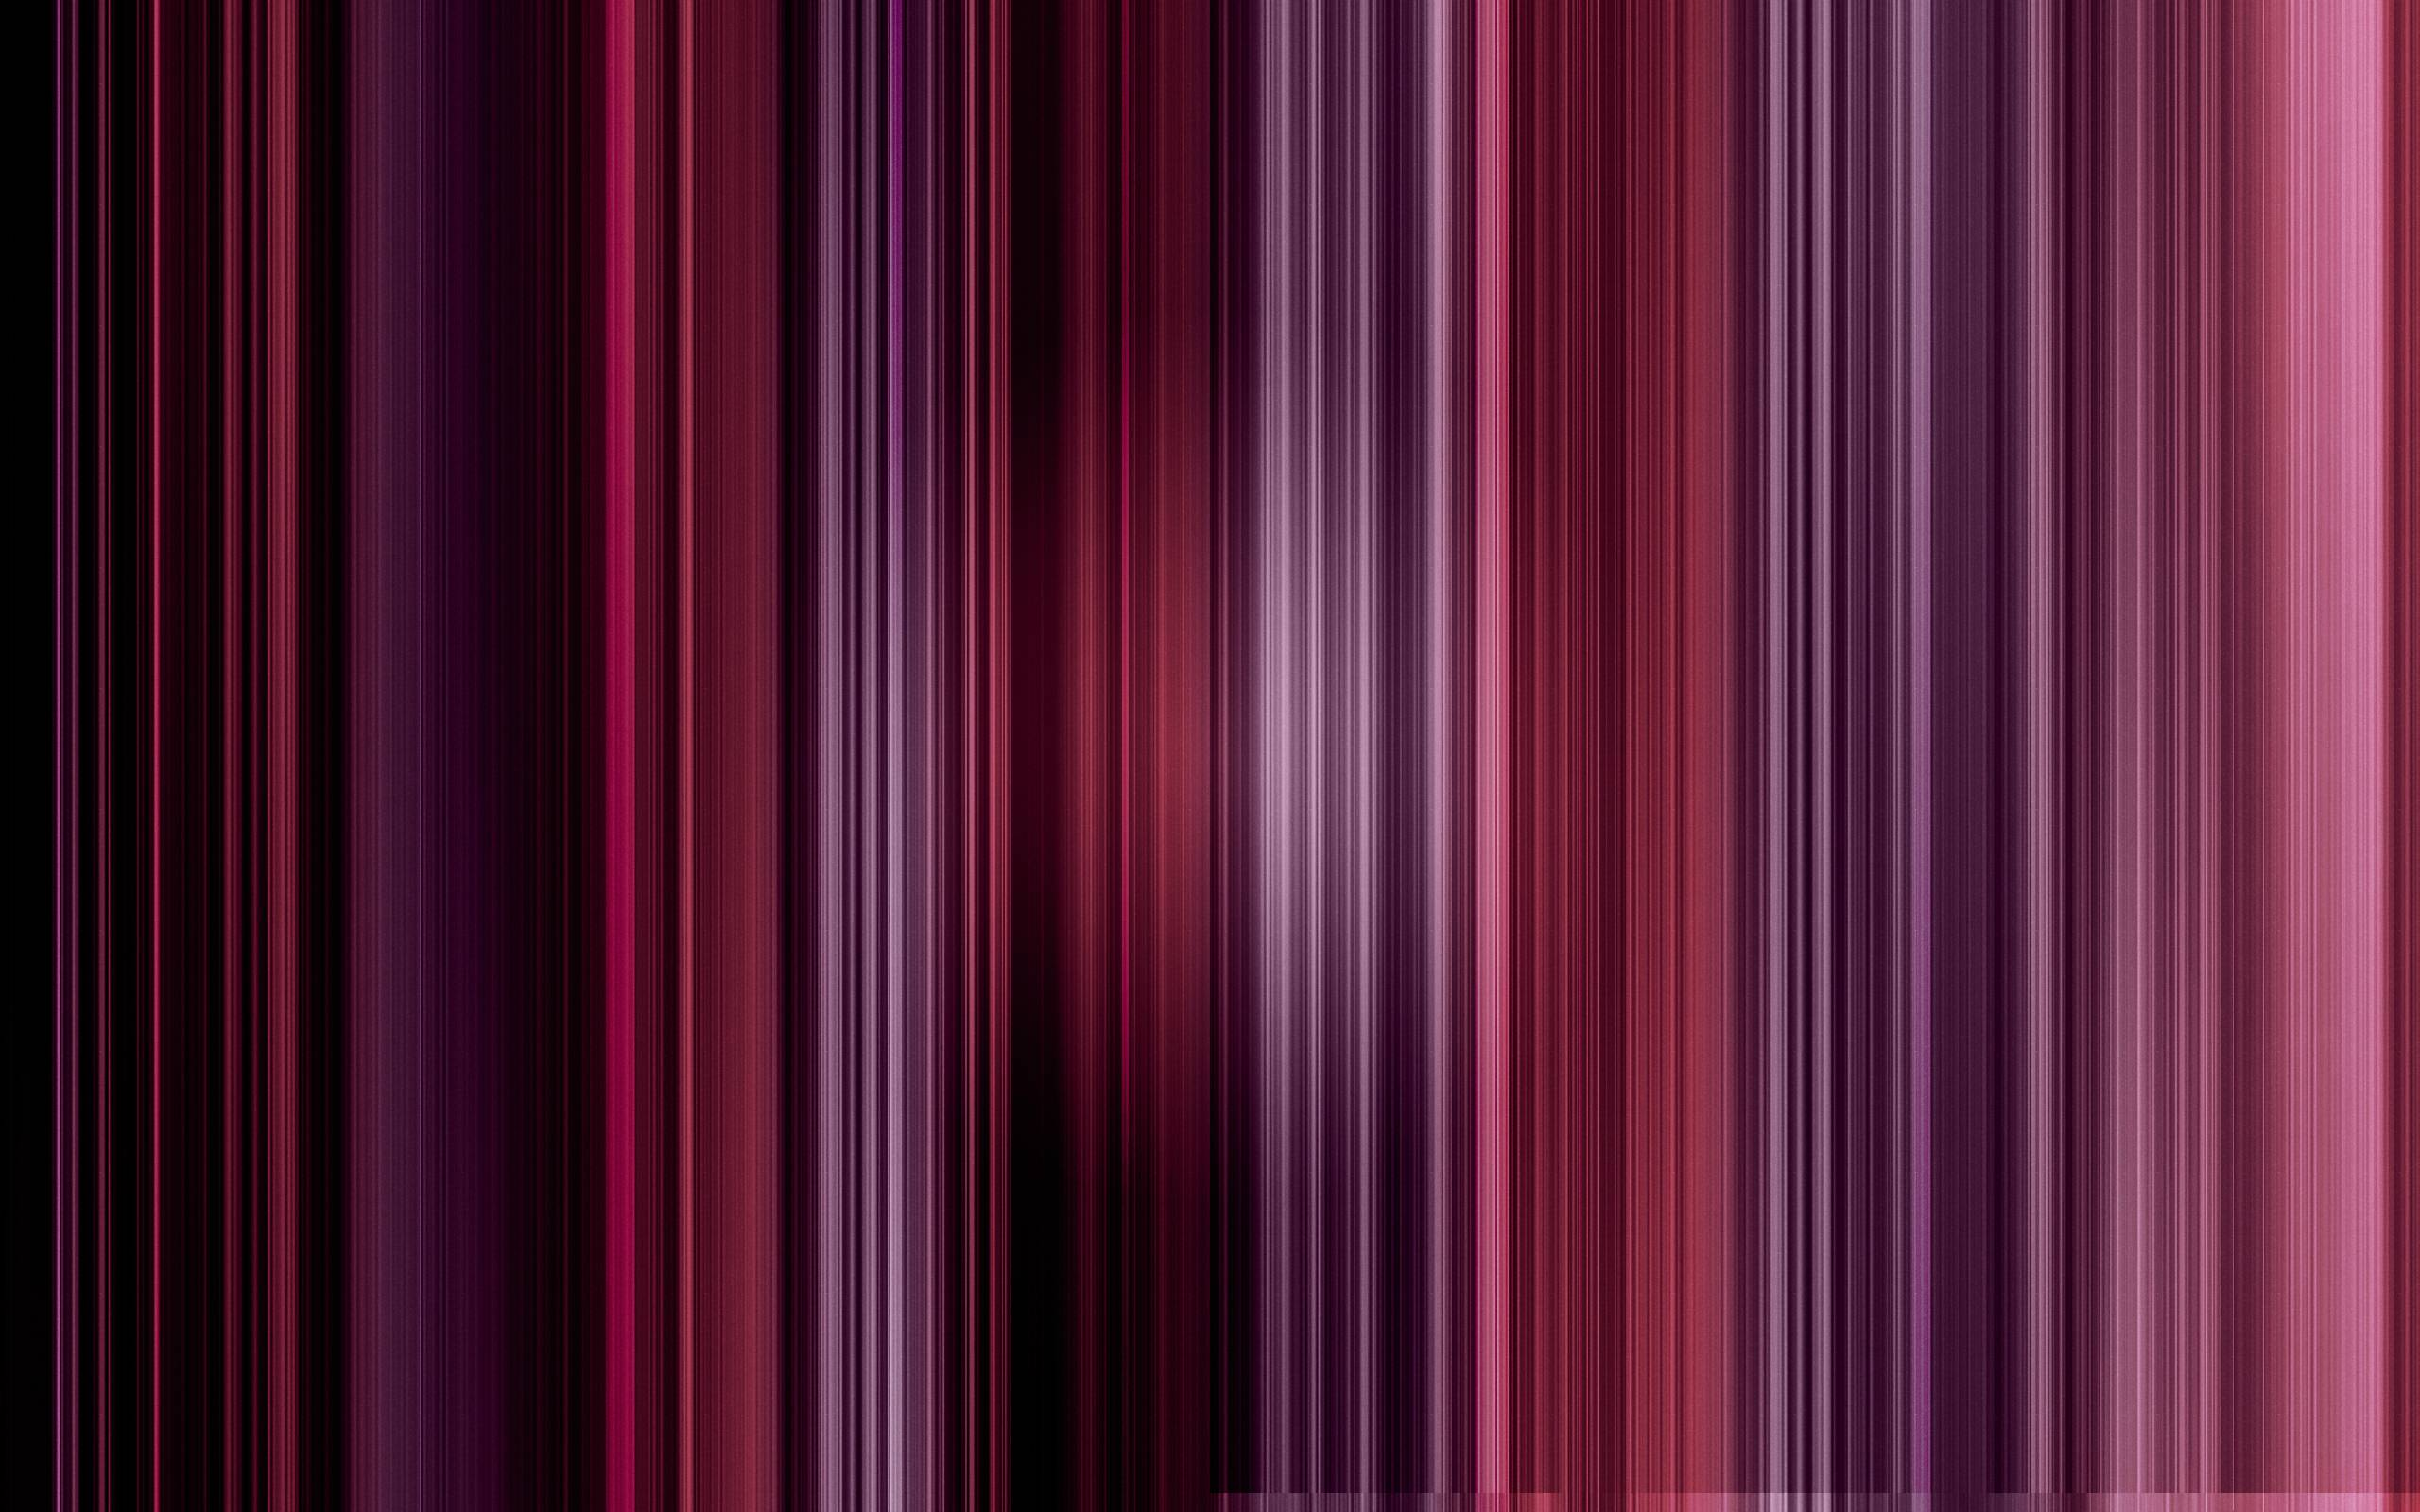 purple striped texture x wallpaper High Quality Wallpapers